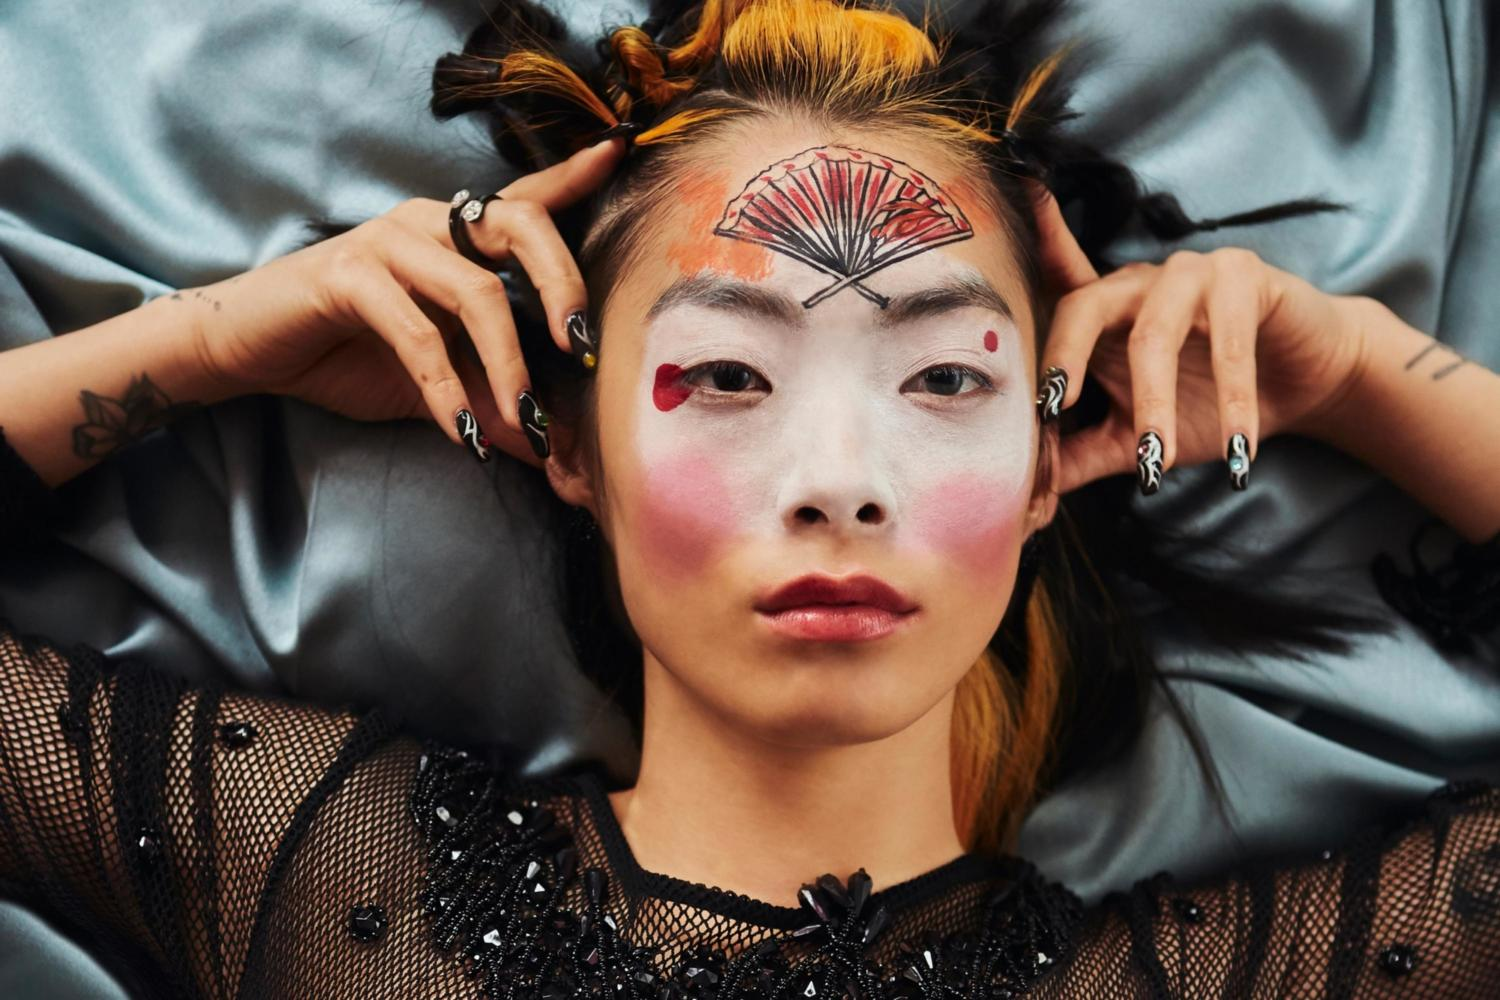 Rina Sawayama releases new song 'Bad Friend'